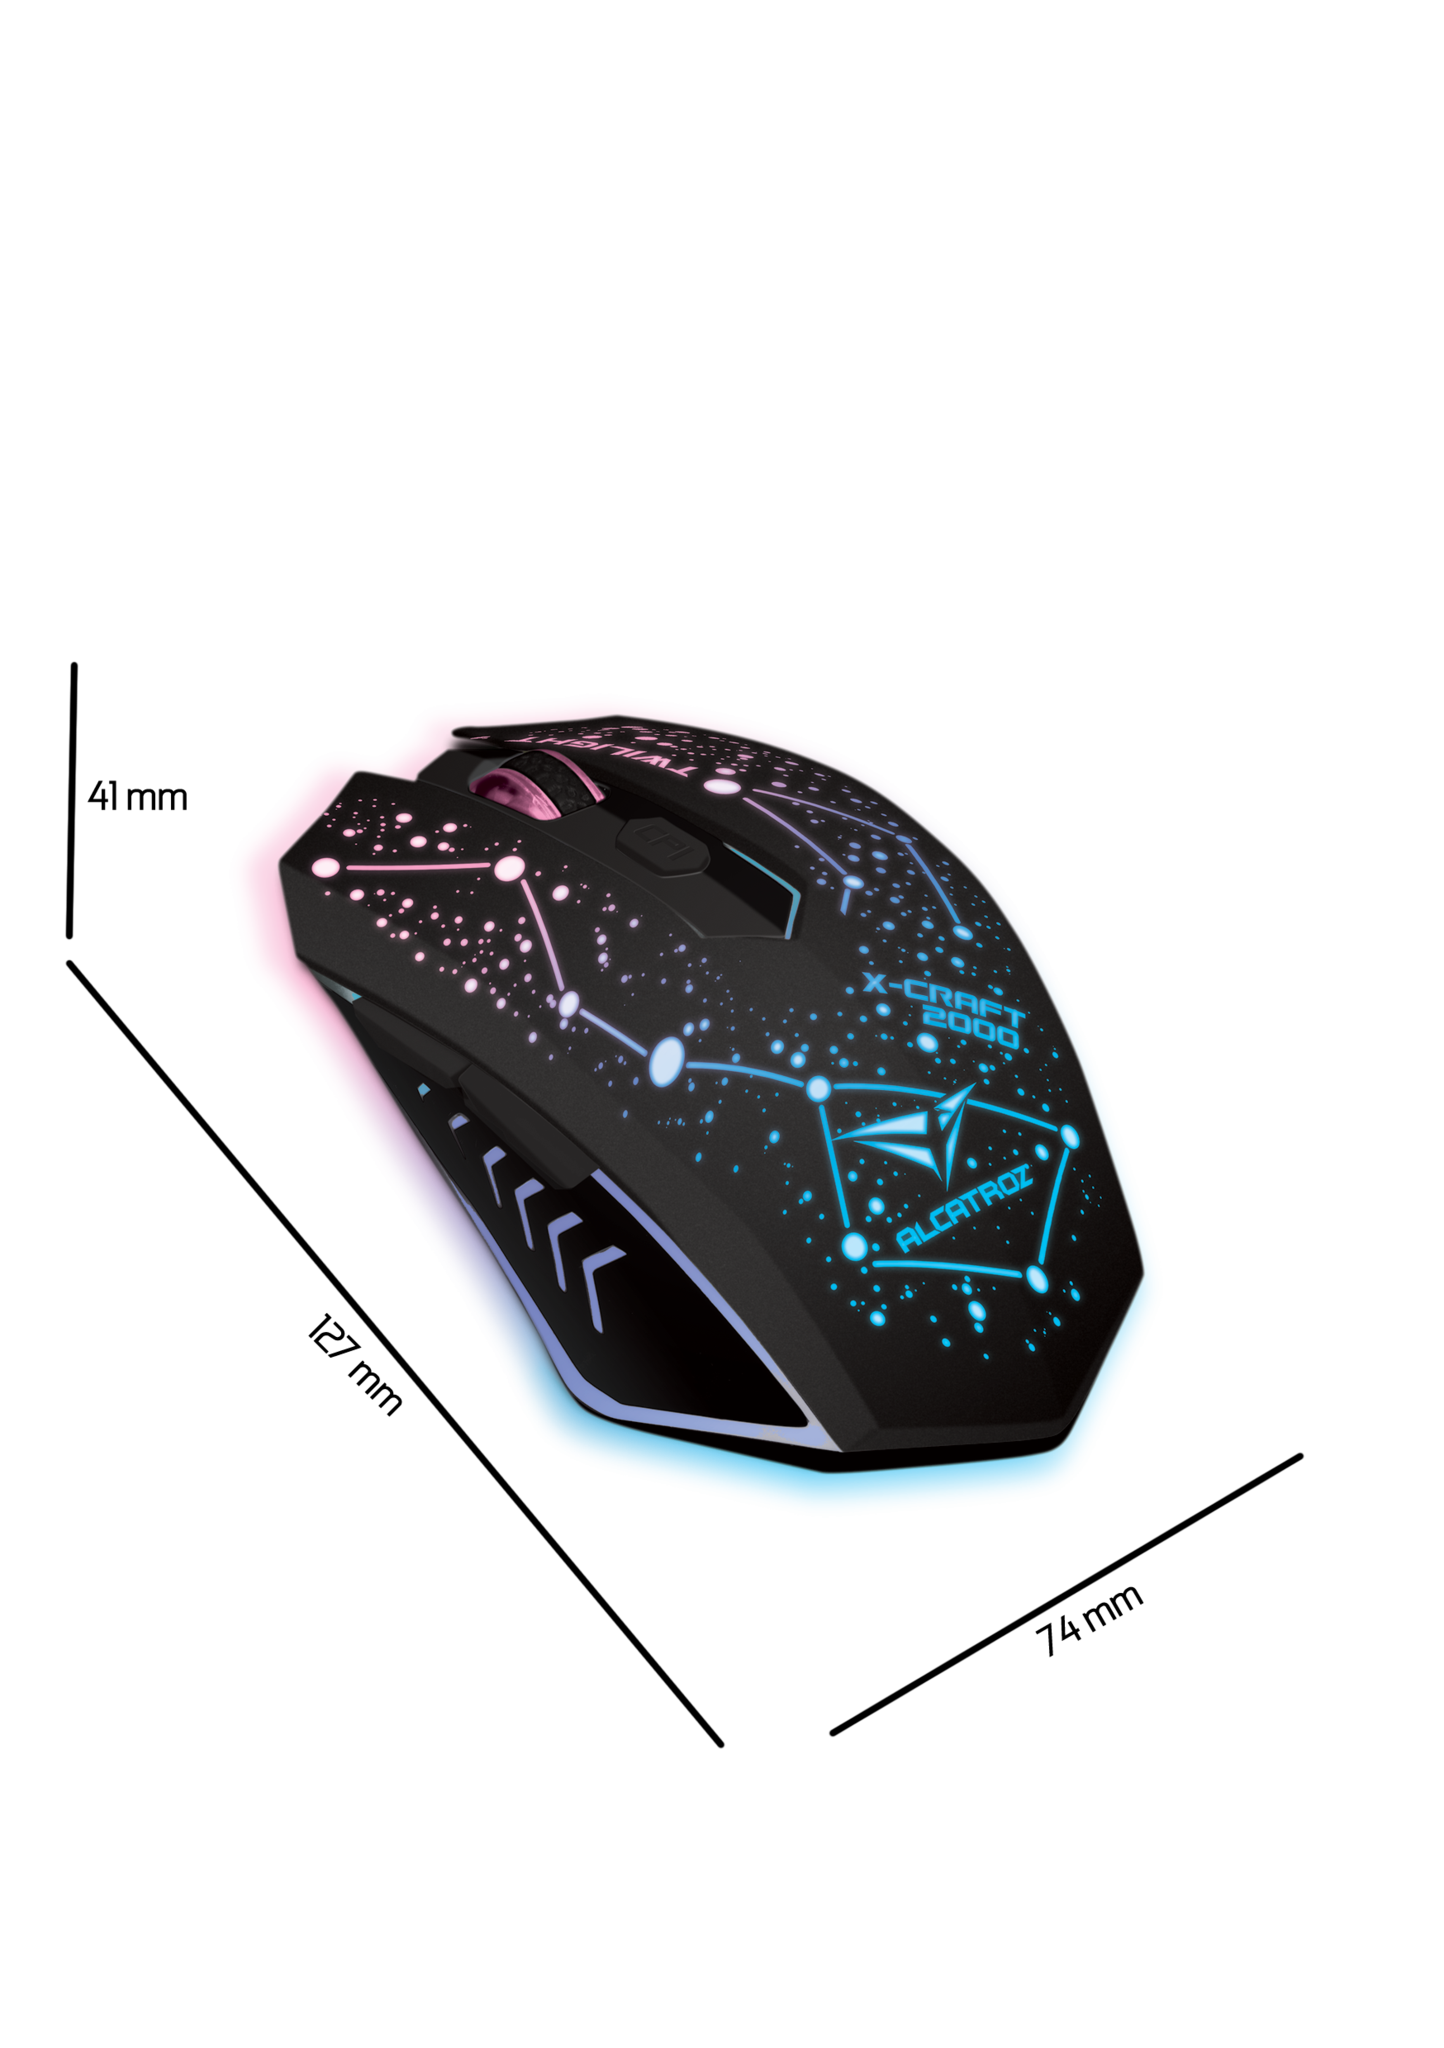 Alcatroz Gaming Mouse X-Craft AIR Twilight 2000